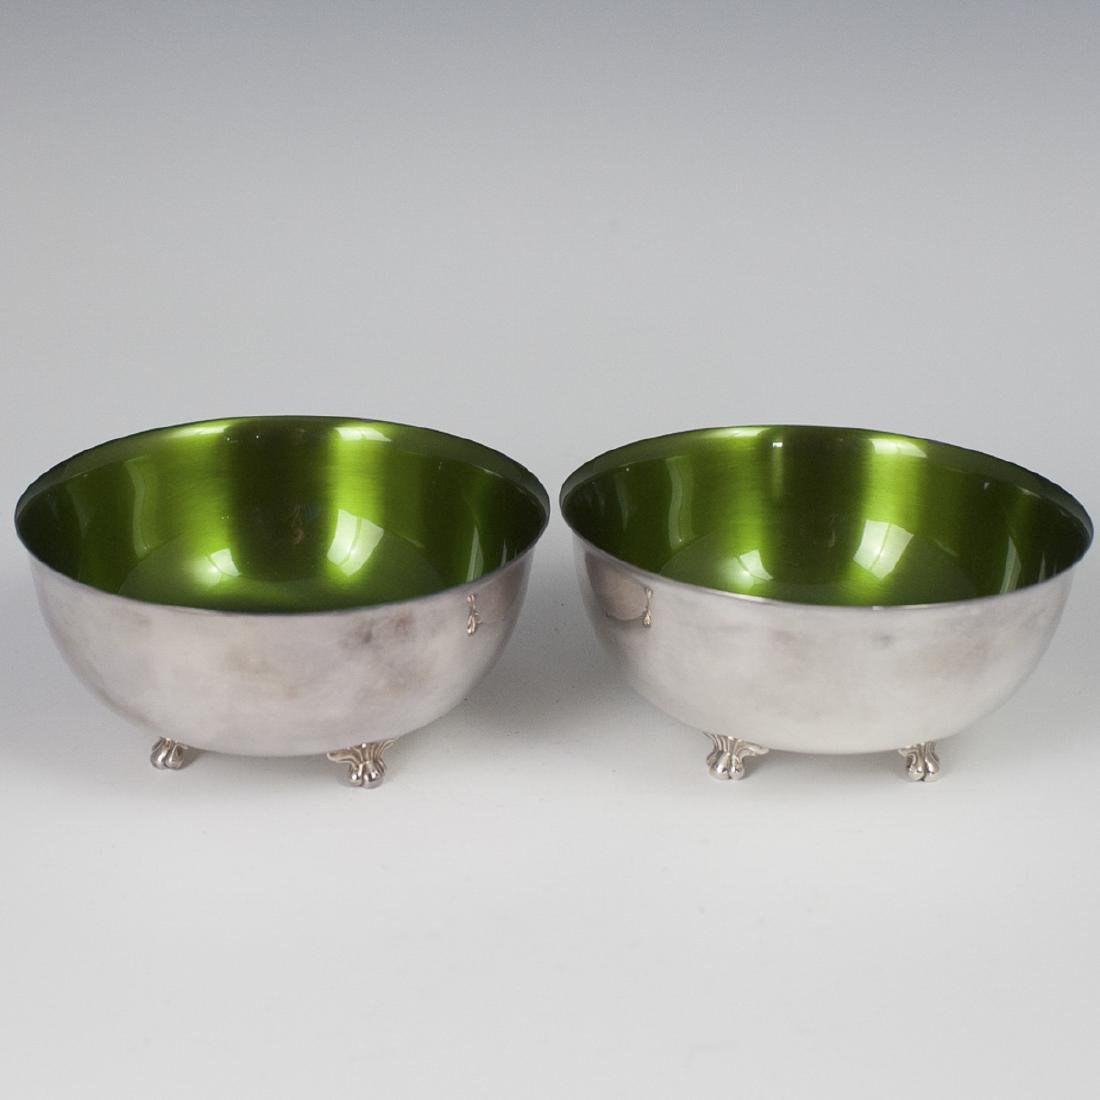 Wallace Silver Plated Enameled Bowls